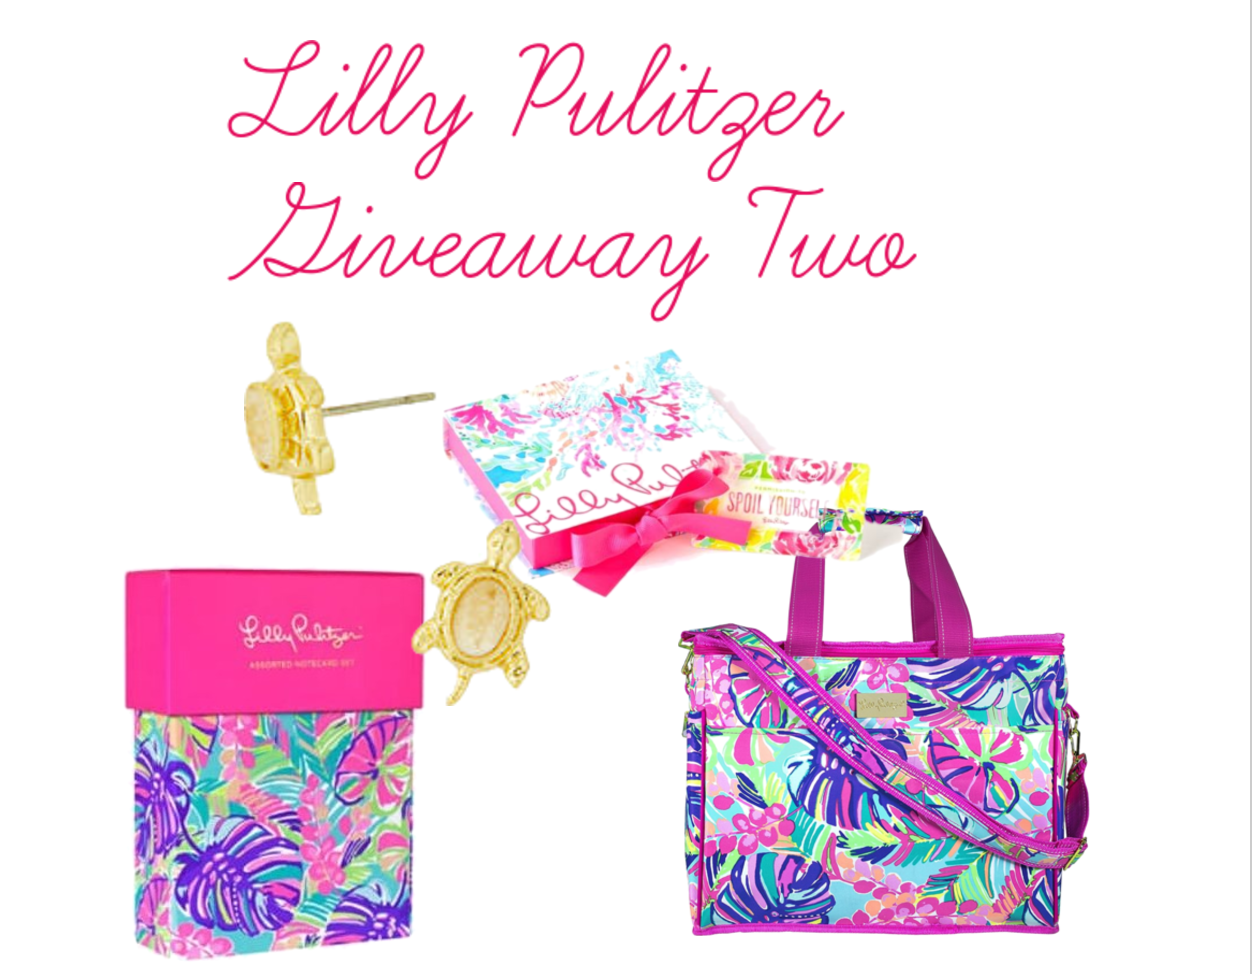 Included In This Giveaway Is A $50 Lilly Pulitzer Egift Card, Insulated  Beach Cooler, A Pair Of The Slow Poke Turtle Earrings, And This Adorable  Note Card